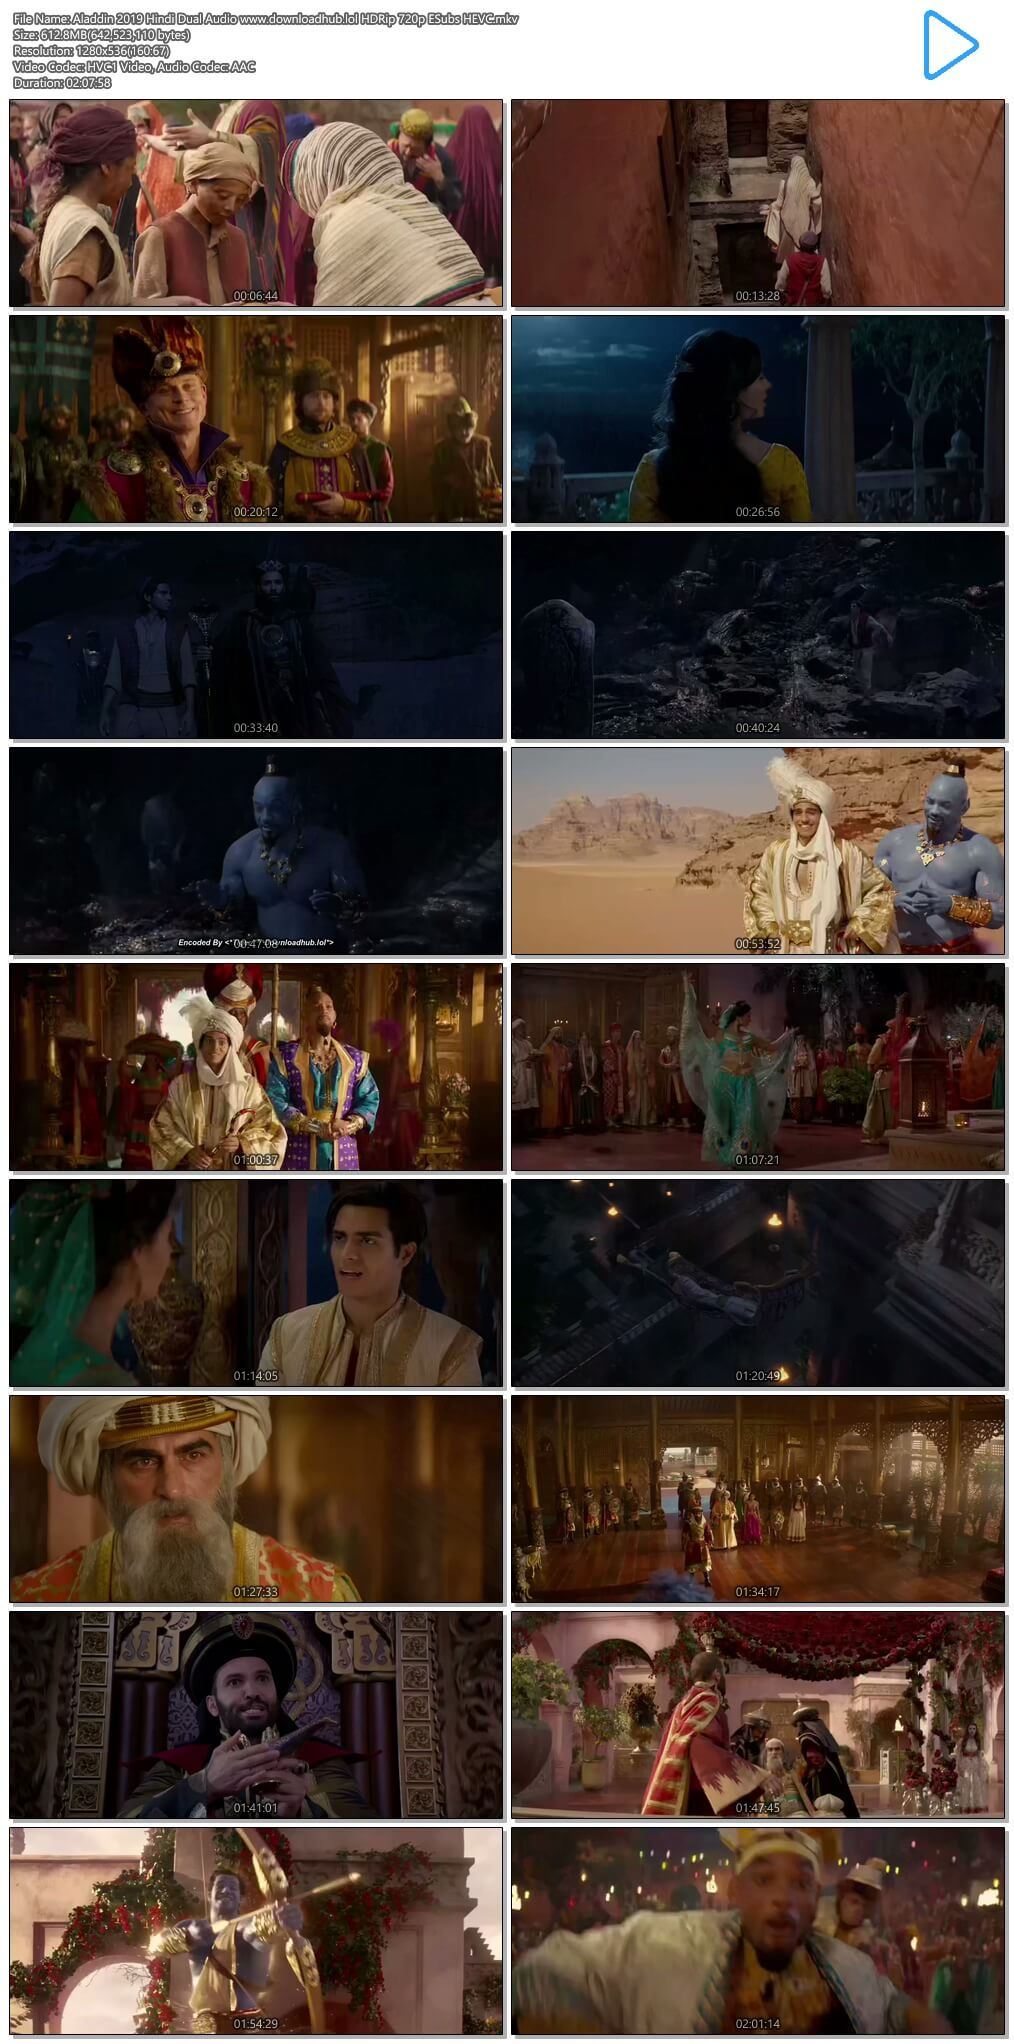 Aladdin 2019 Hindi Dual Audio 600MB HDRip 720p ESubs HEVC